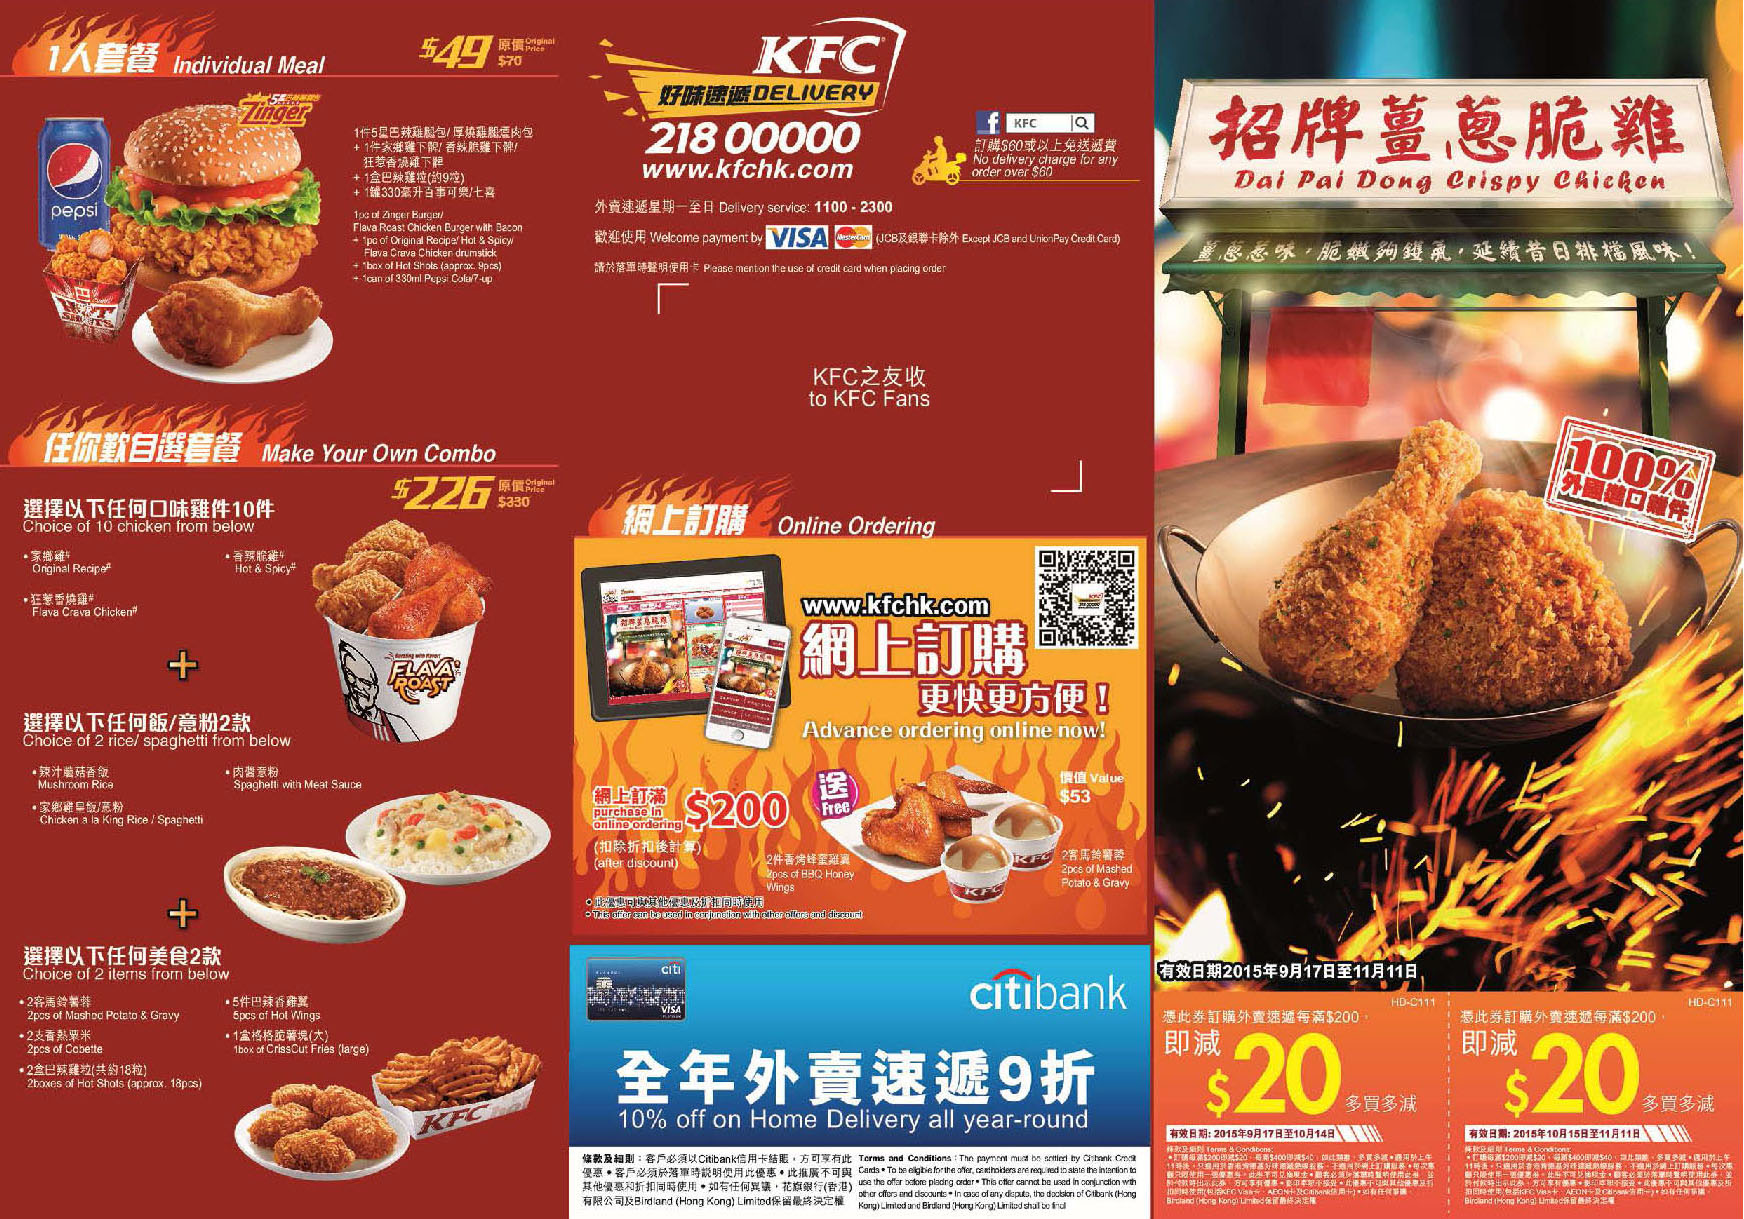 Kfc coupons usa